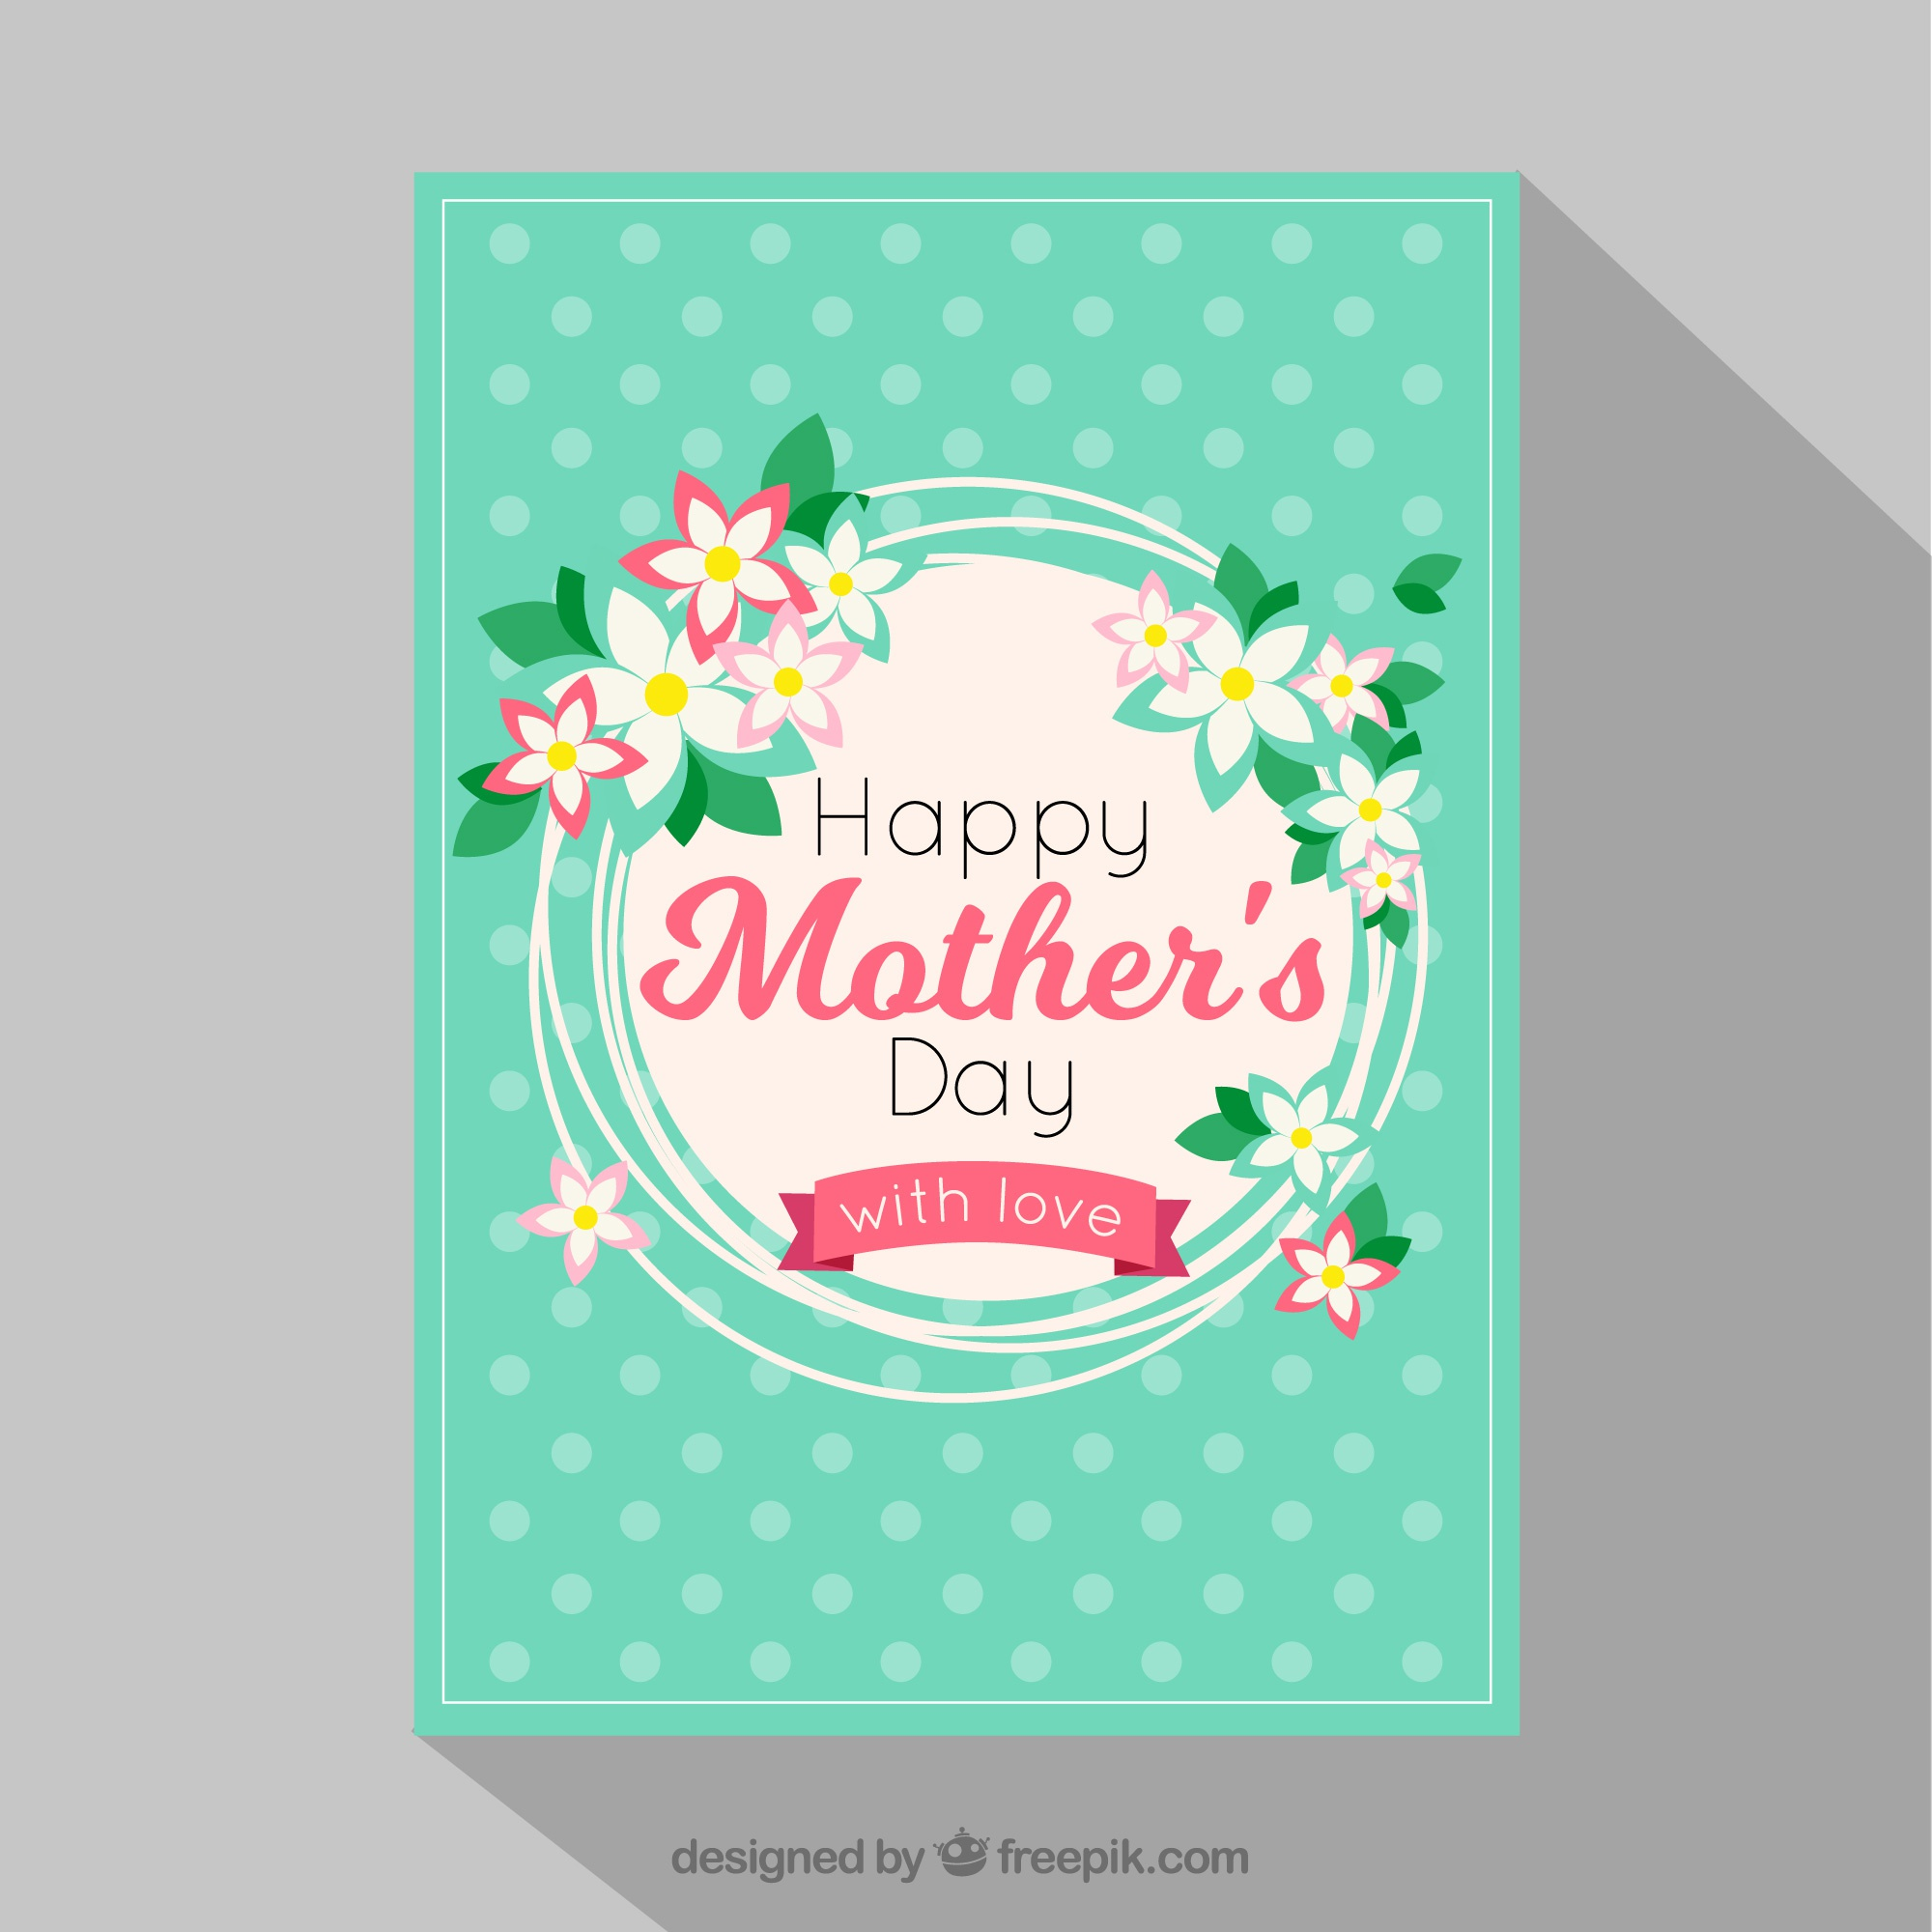 Mother's day card with dots and floral decoration